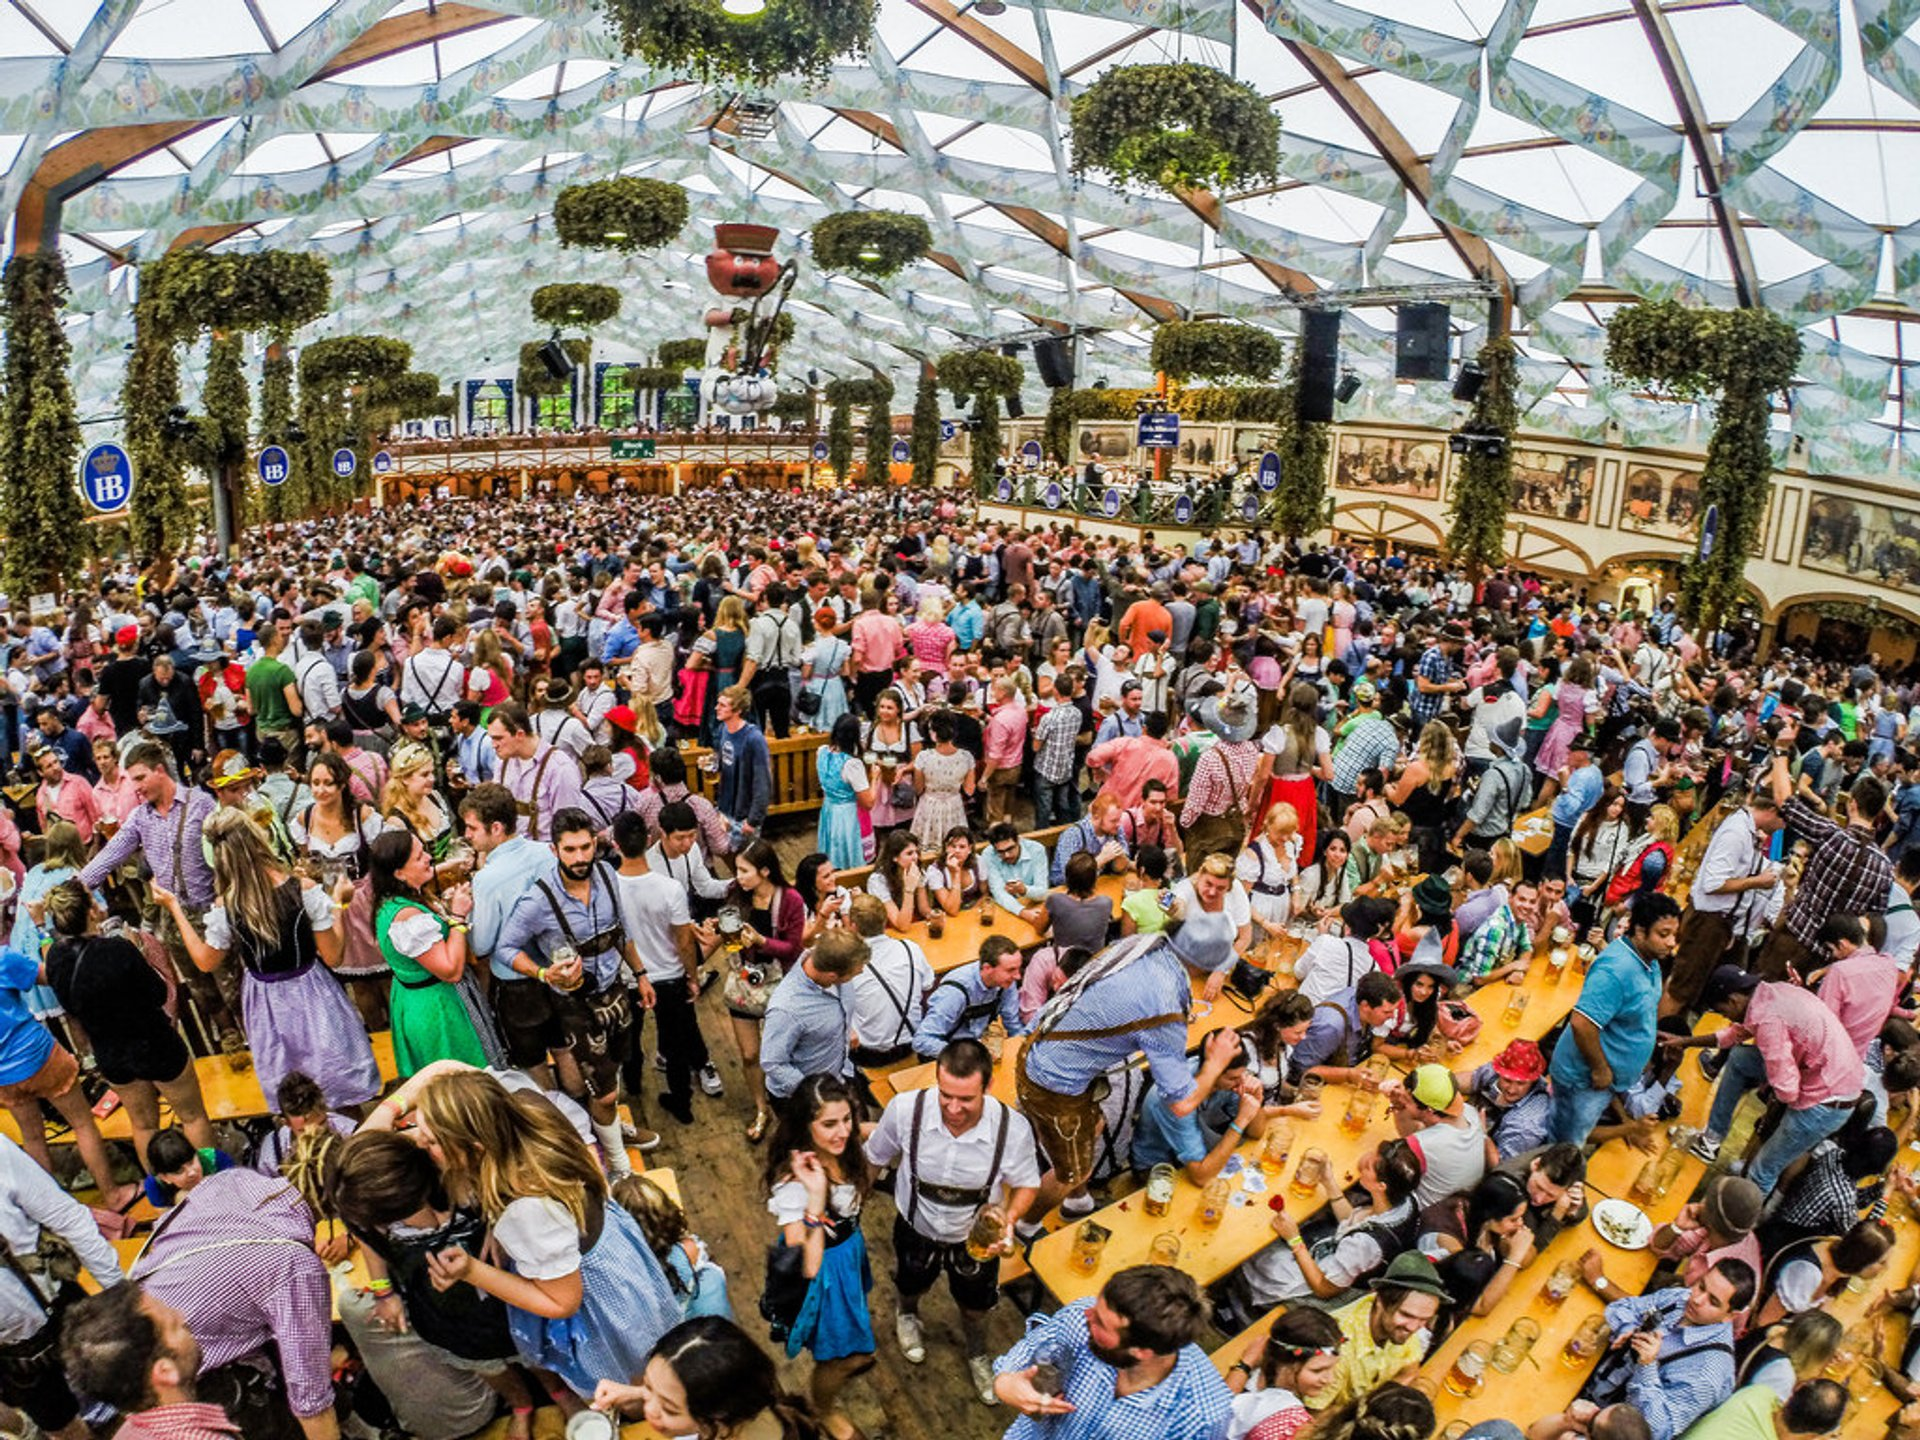 Best time for Oktoberfest in Munich 2019